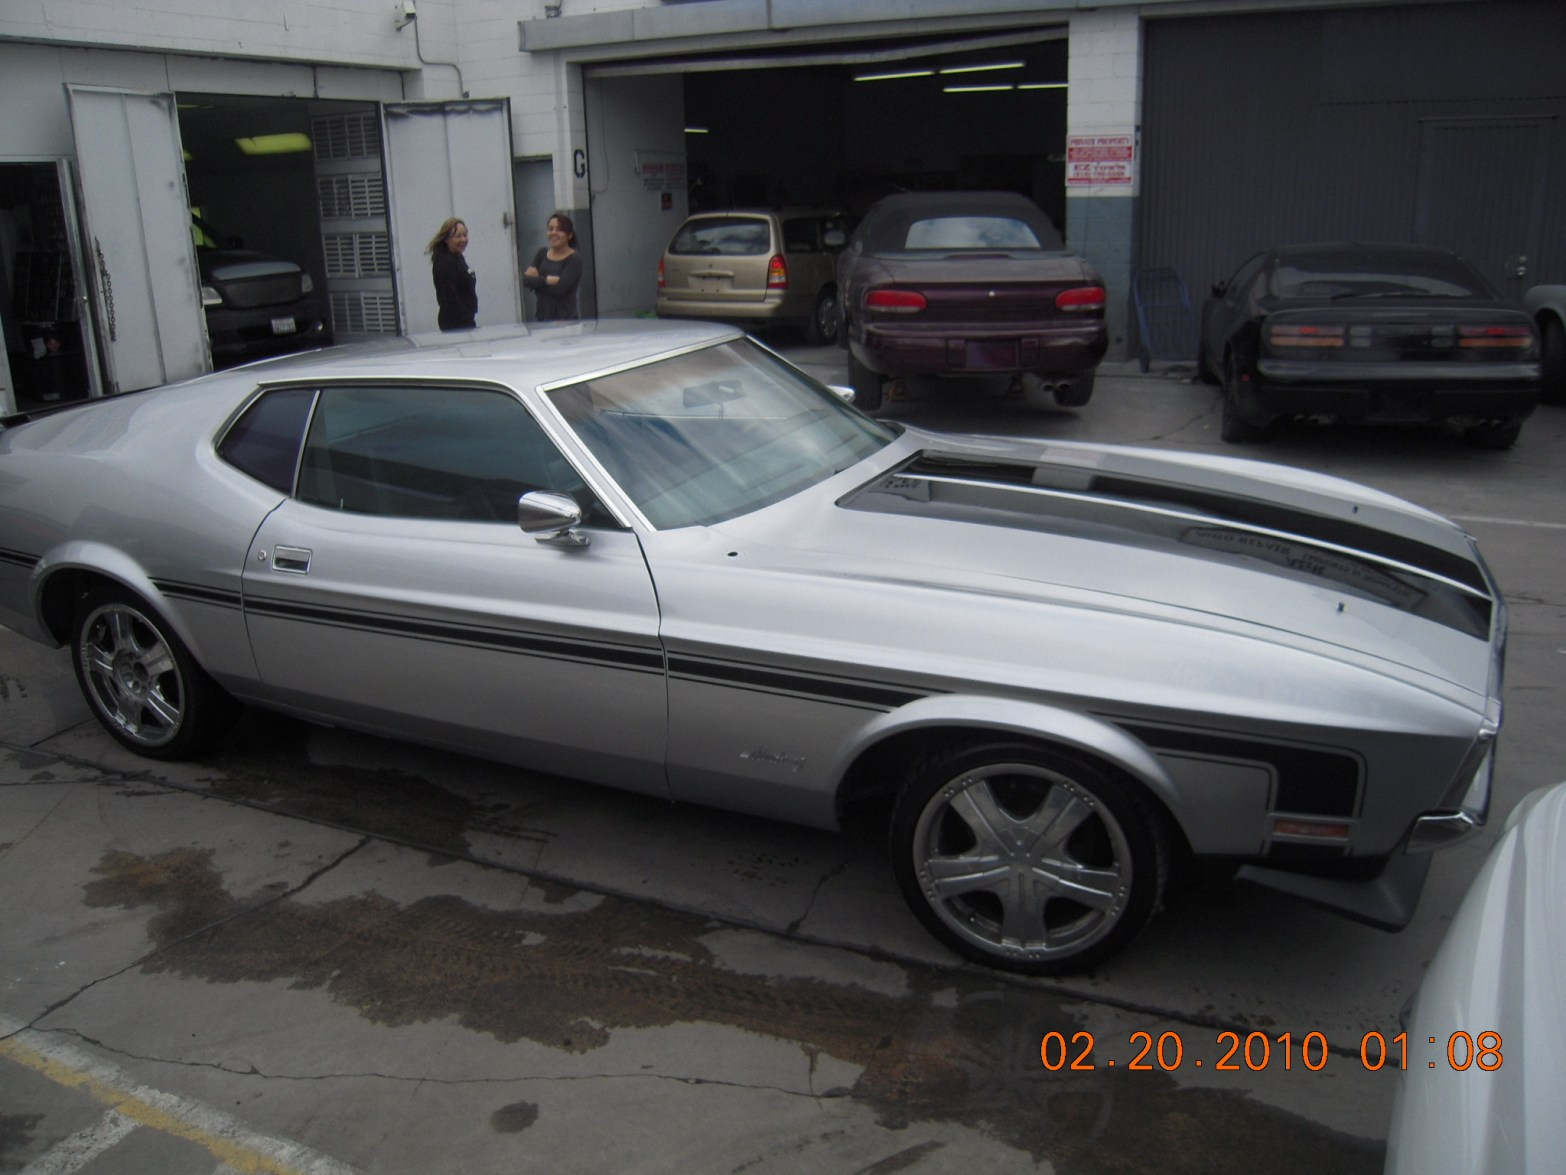 west-coast-body-and-paint-1971-mustang-mach-1-gray-43